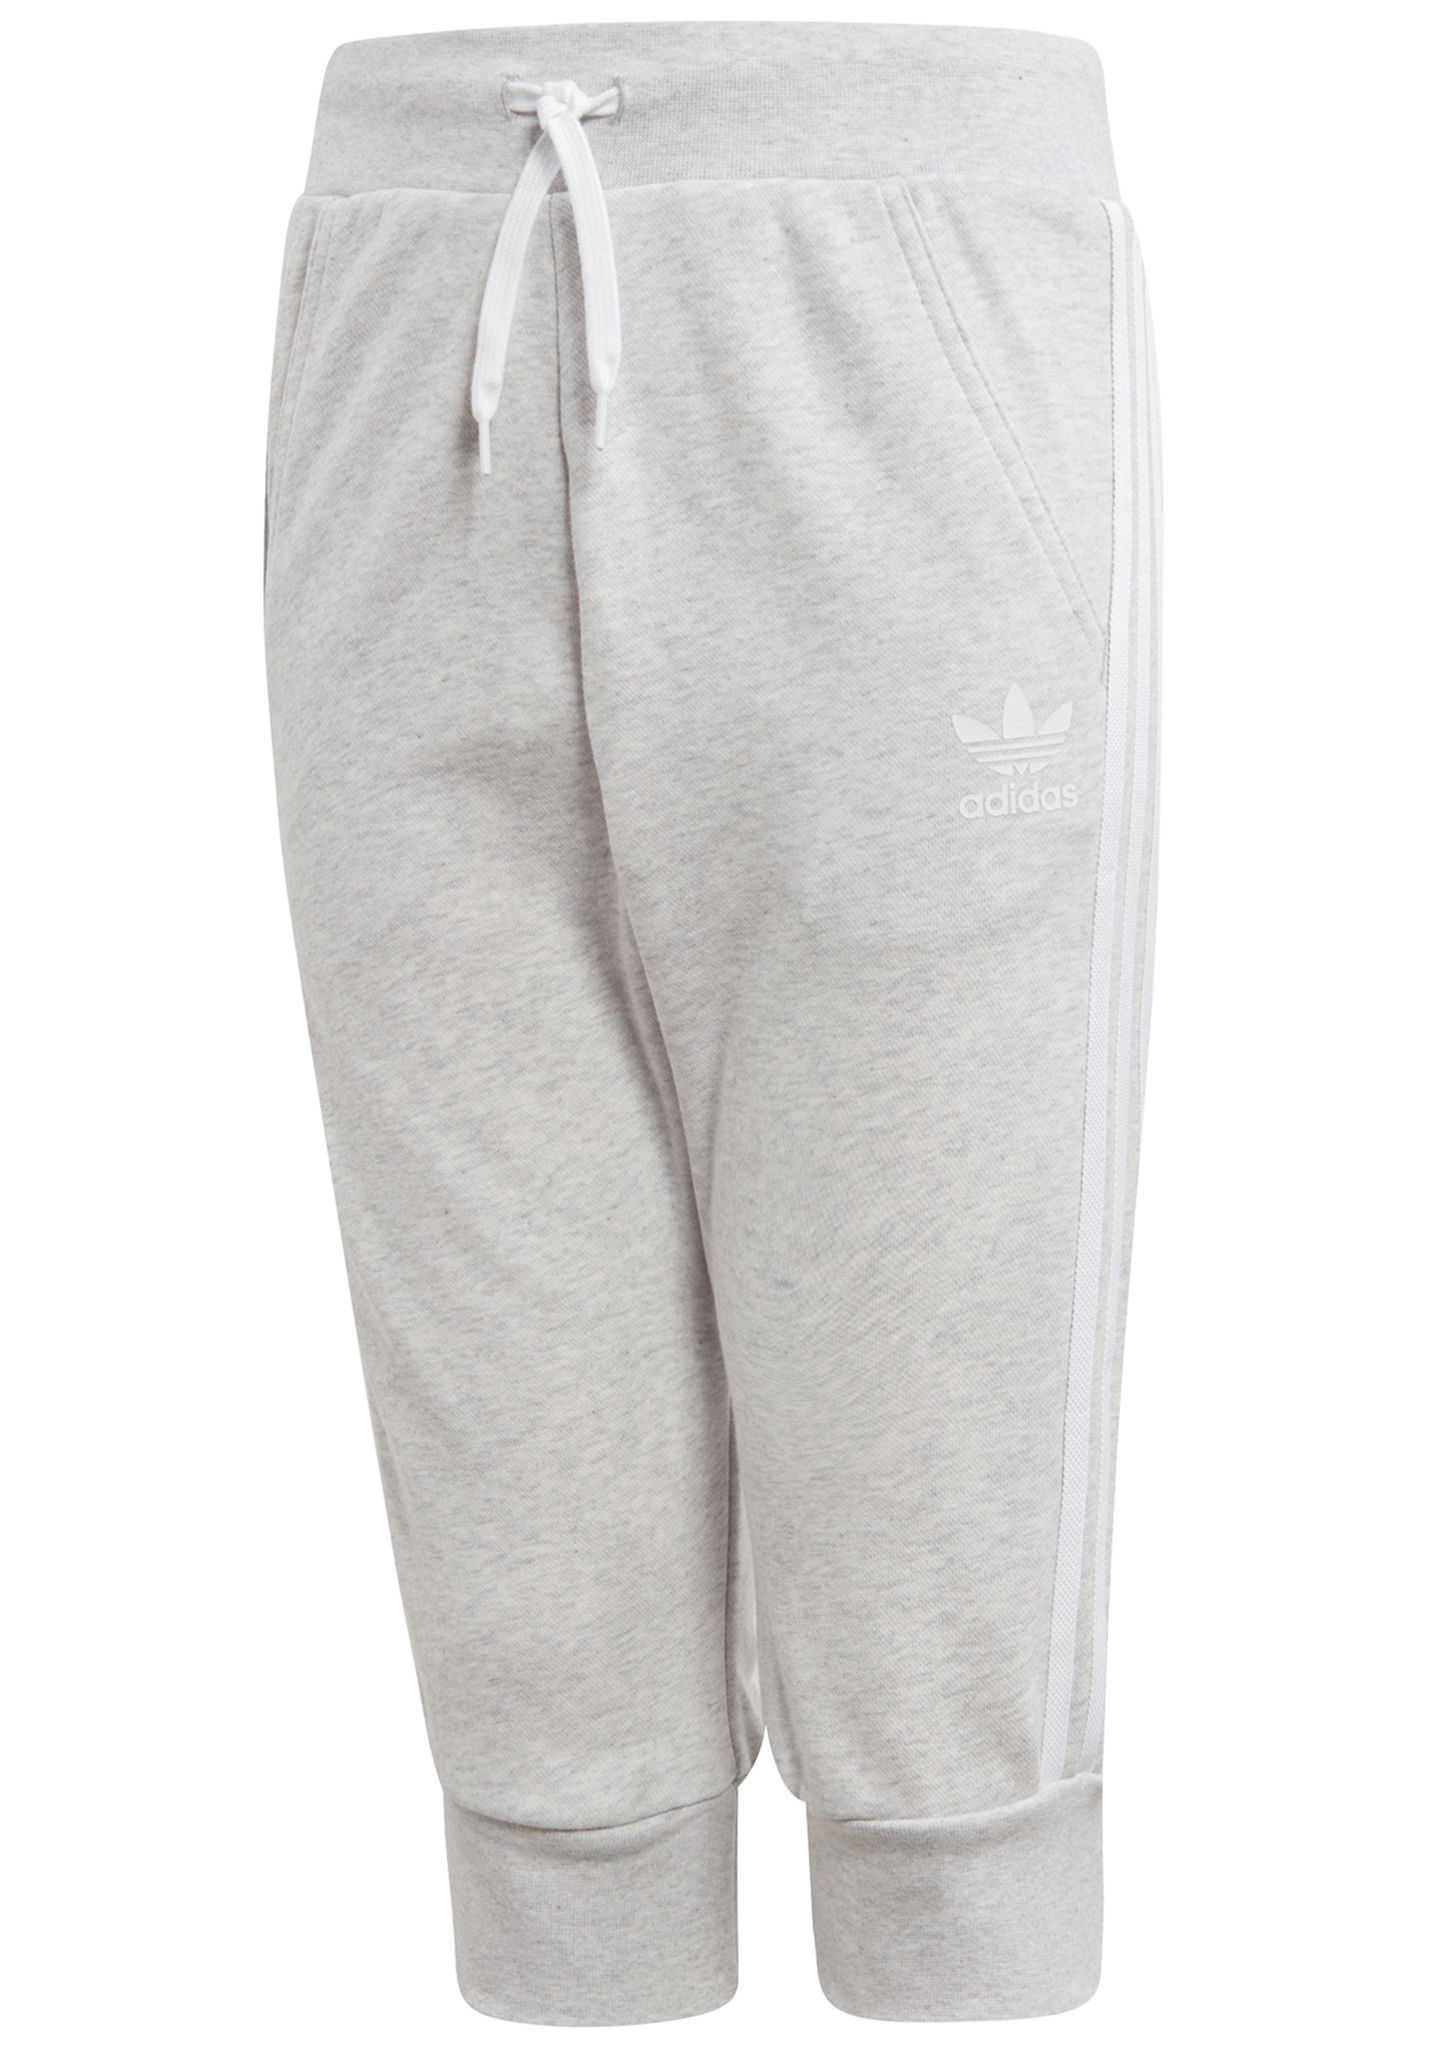 76306ebbecbb ADIDAS Graphic - Pantalon de survêtement - Gris - Planet Sports